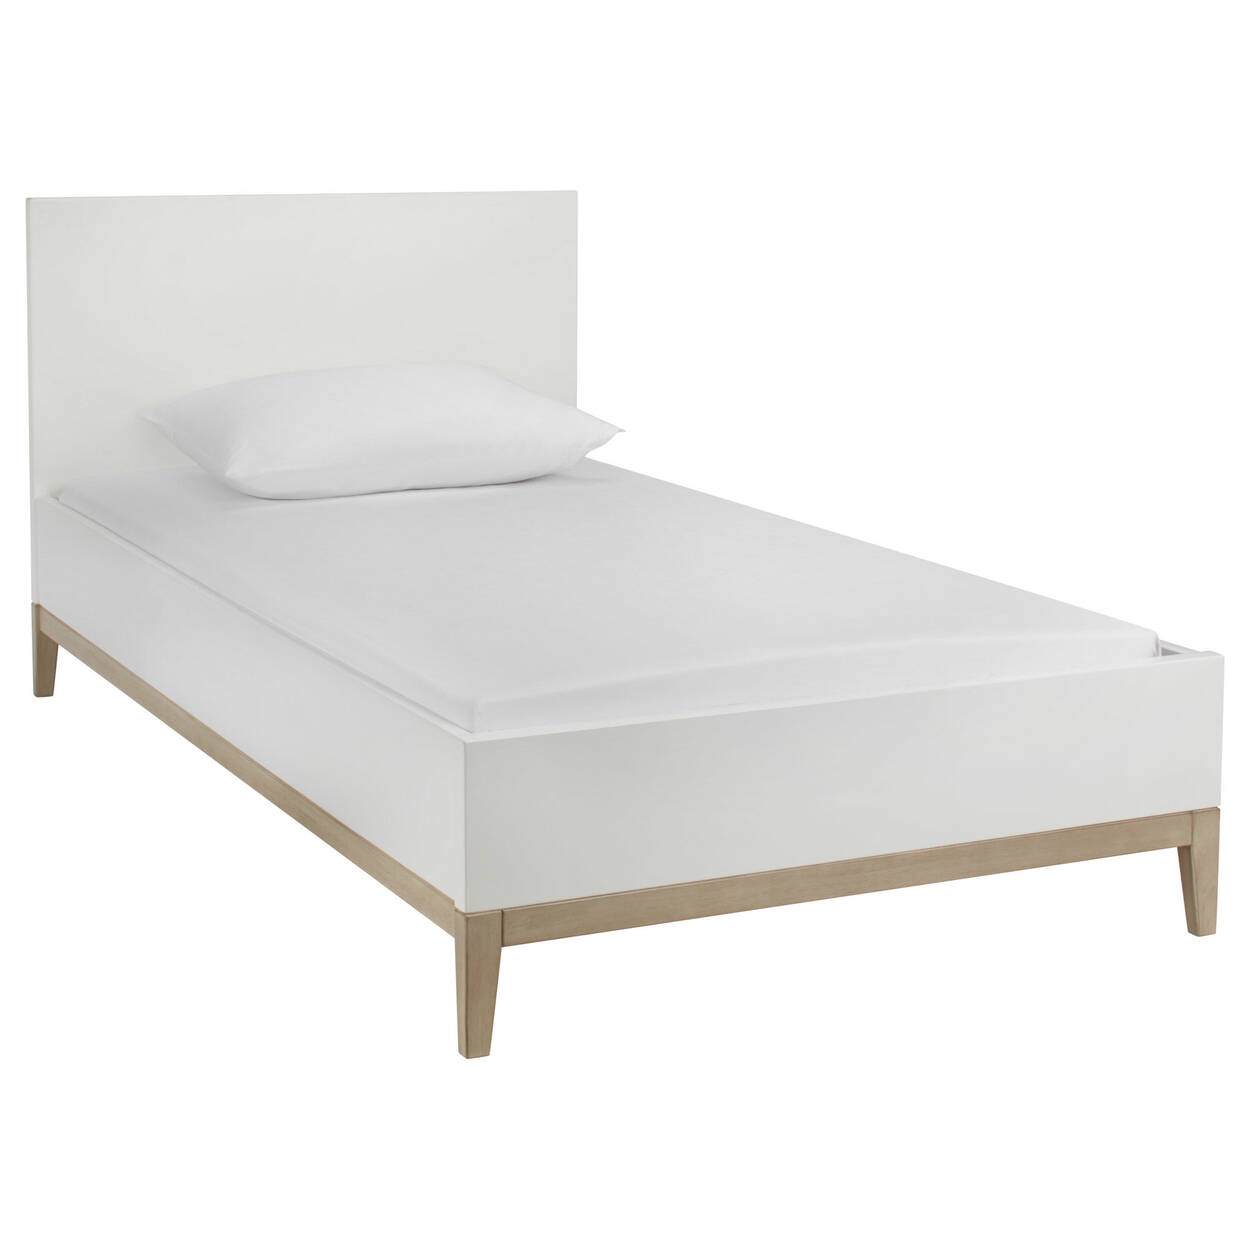 free today shipping product memory firm twin mattress foam luxury medium inch home select overstock garden size